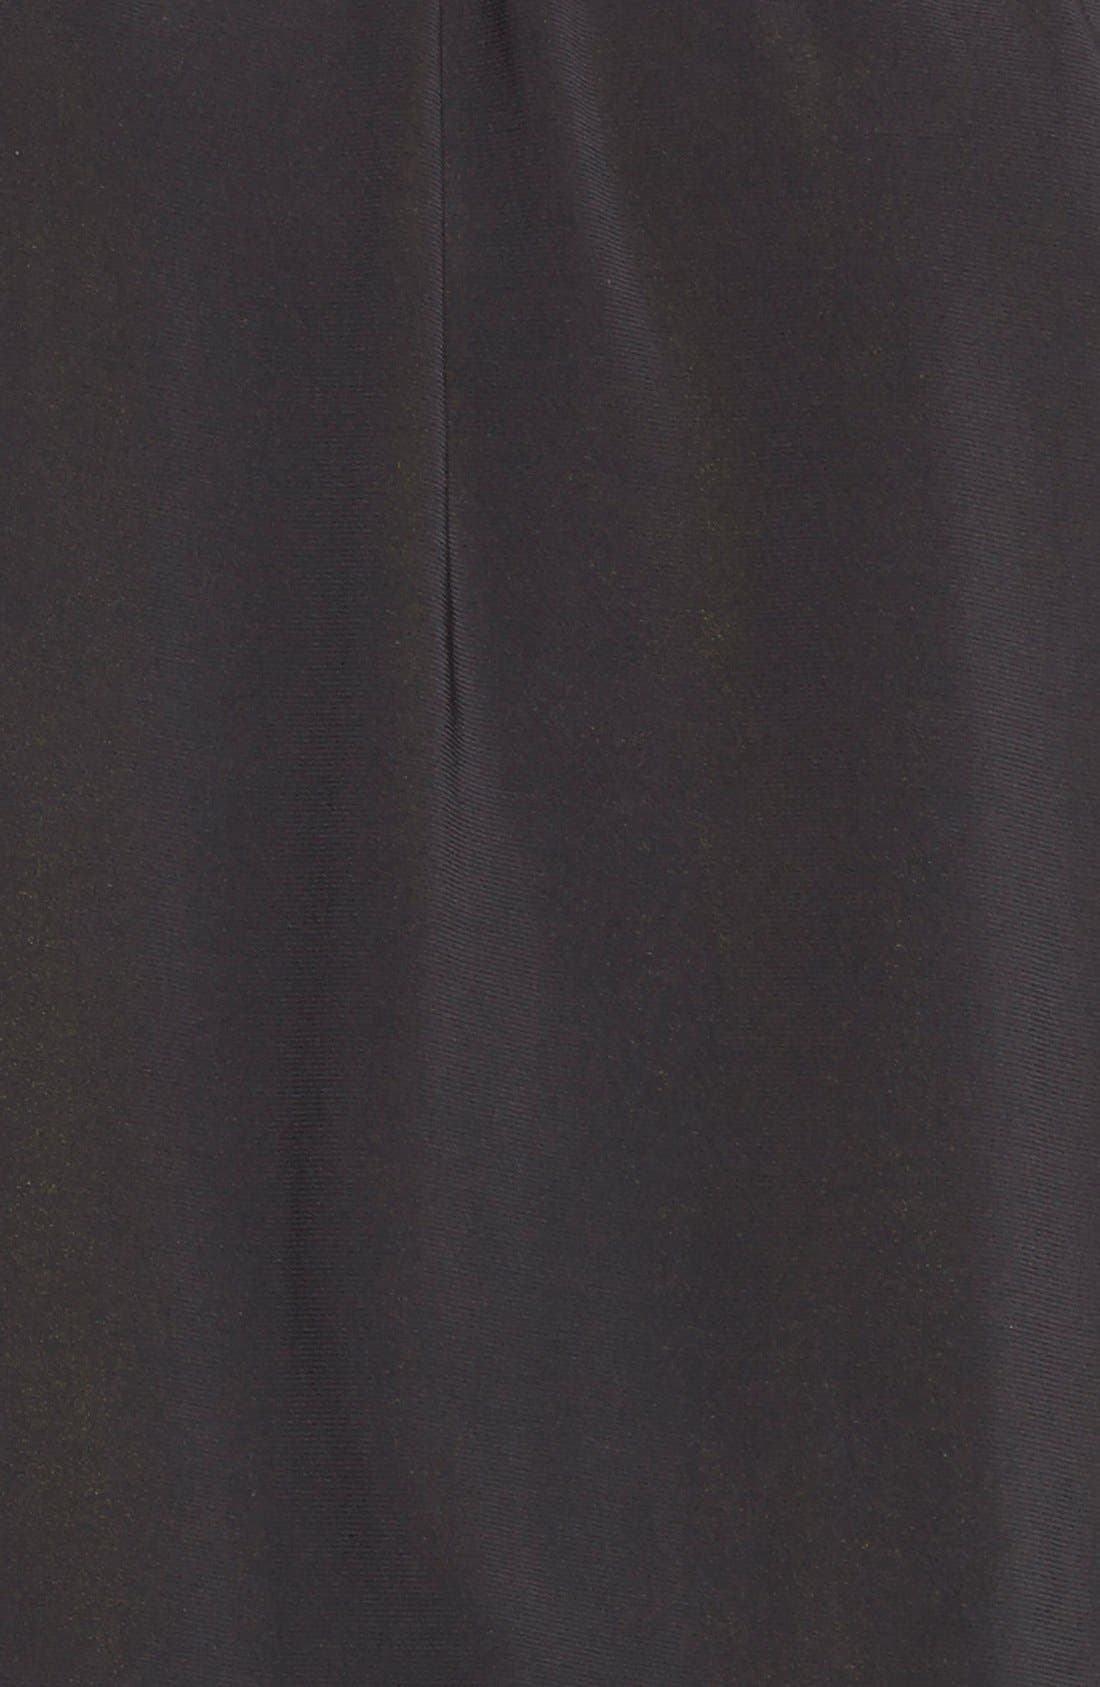 Alternate Image 3  - Laundry by Shelli Segal Chain Detail Jersey Jumpsuit